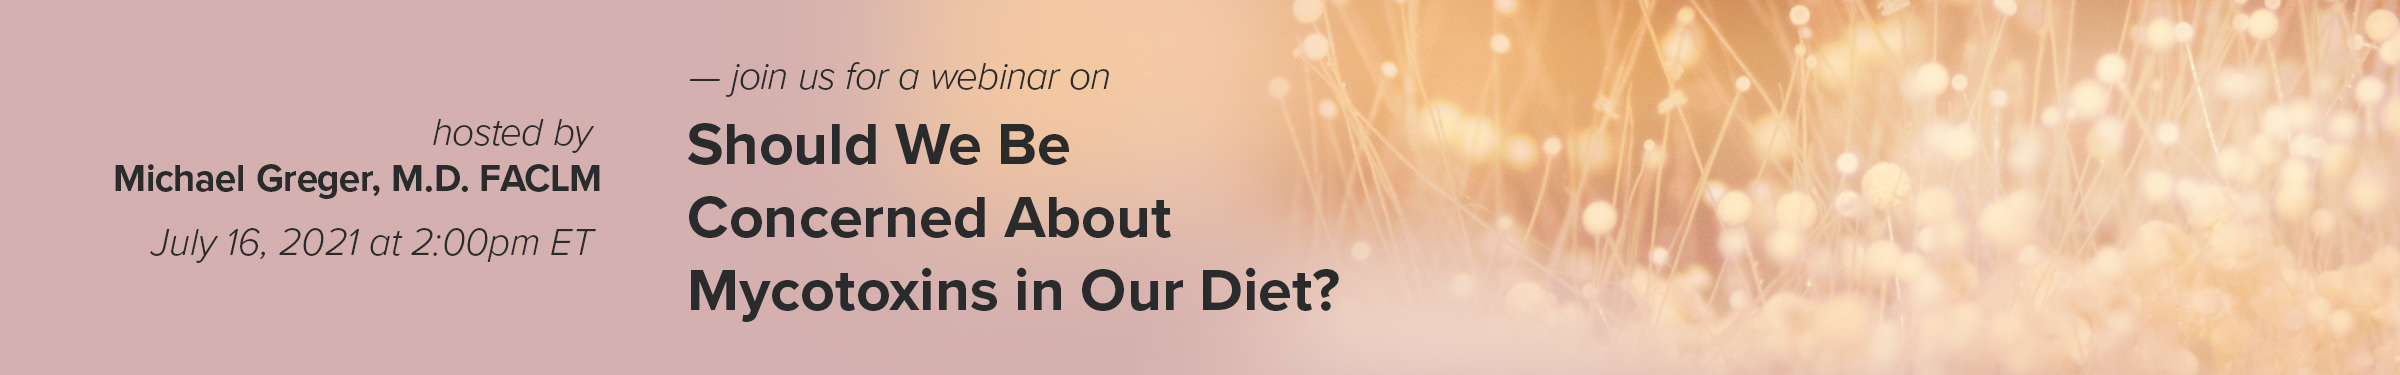 Should We Be Concerned About Mycotoxins in Our Diet?